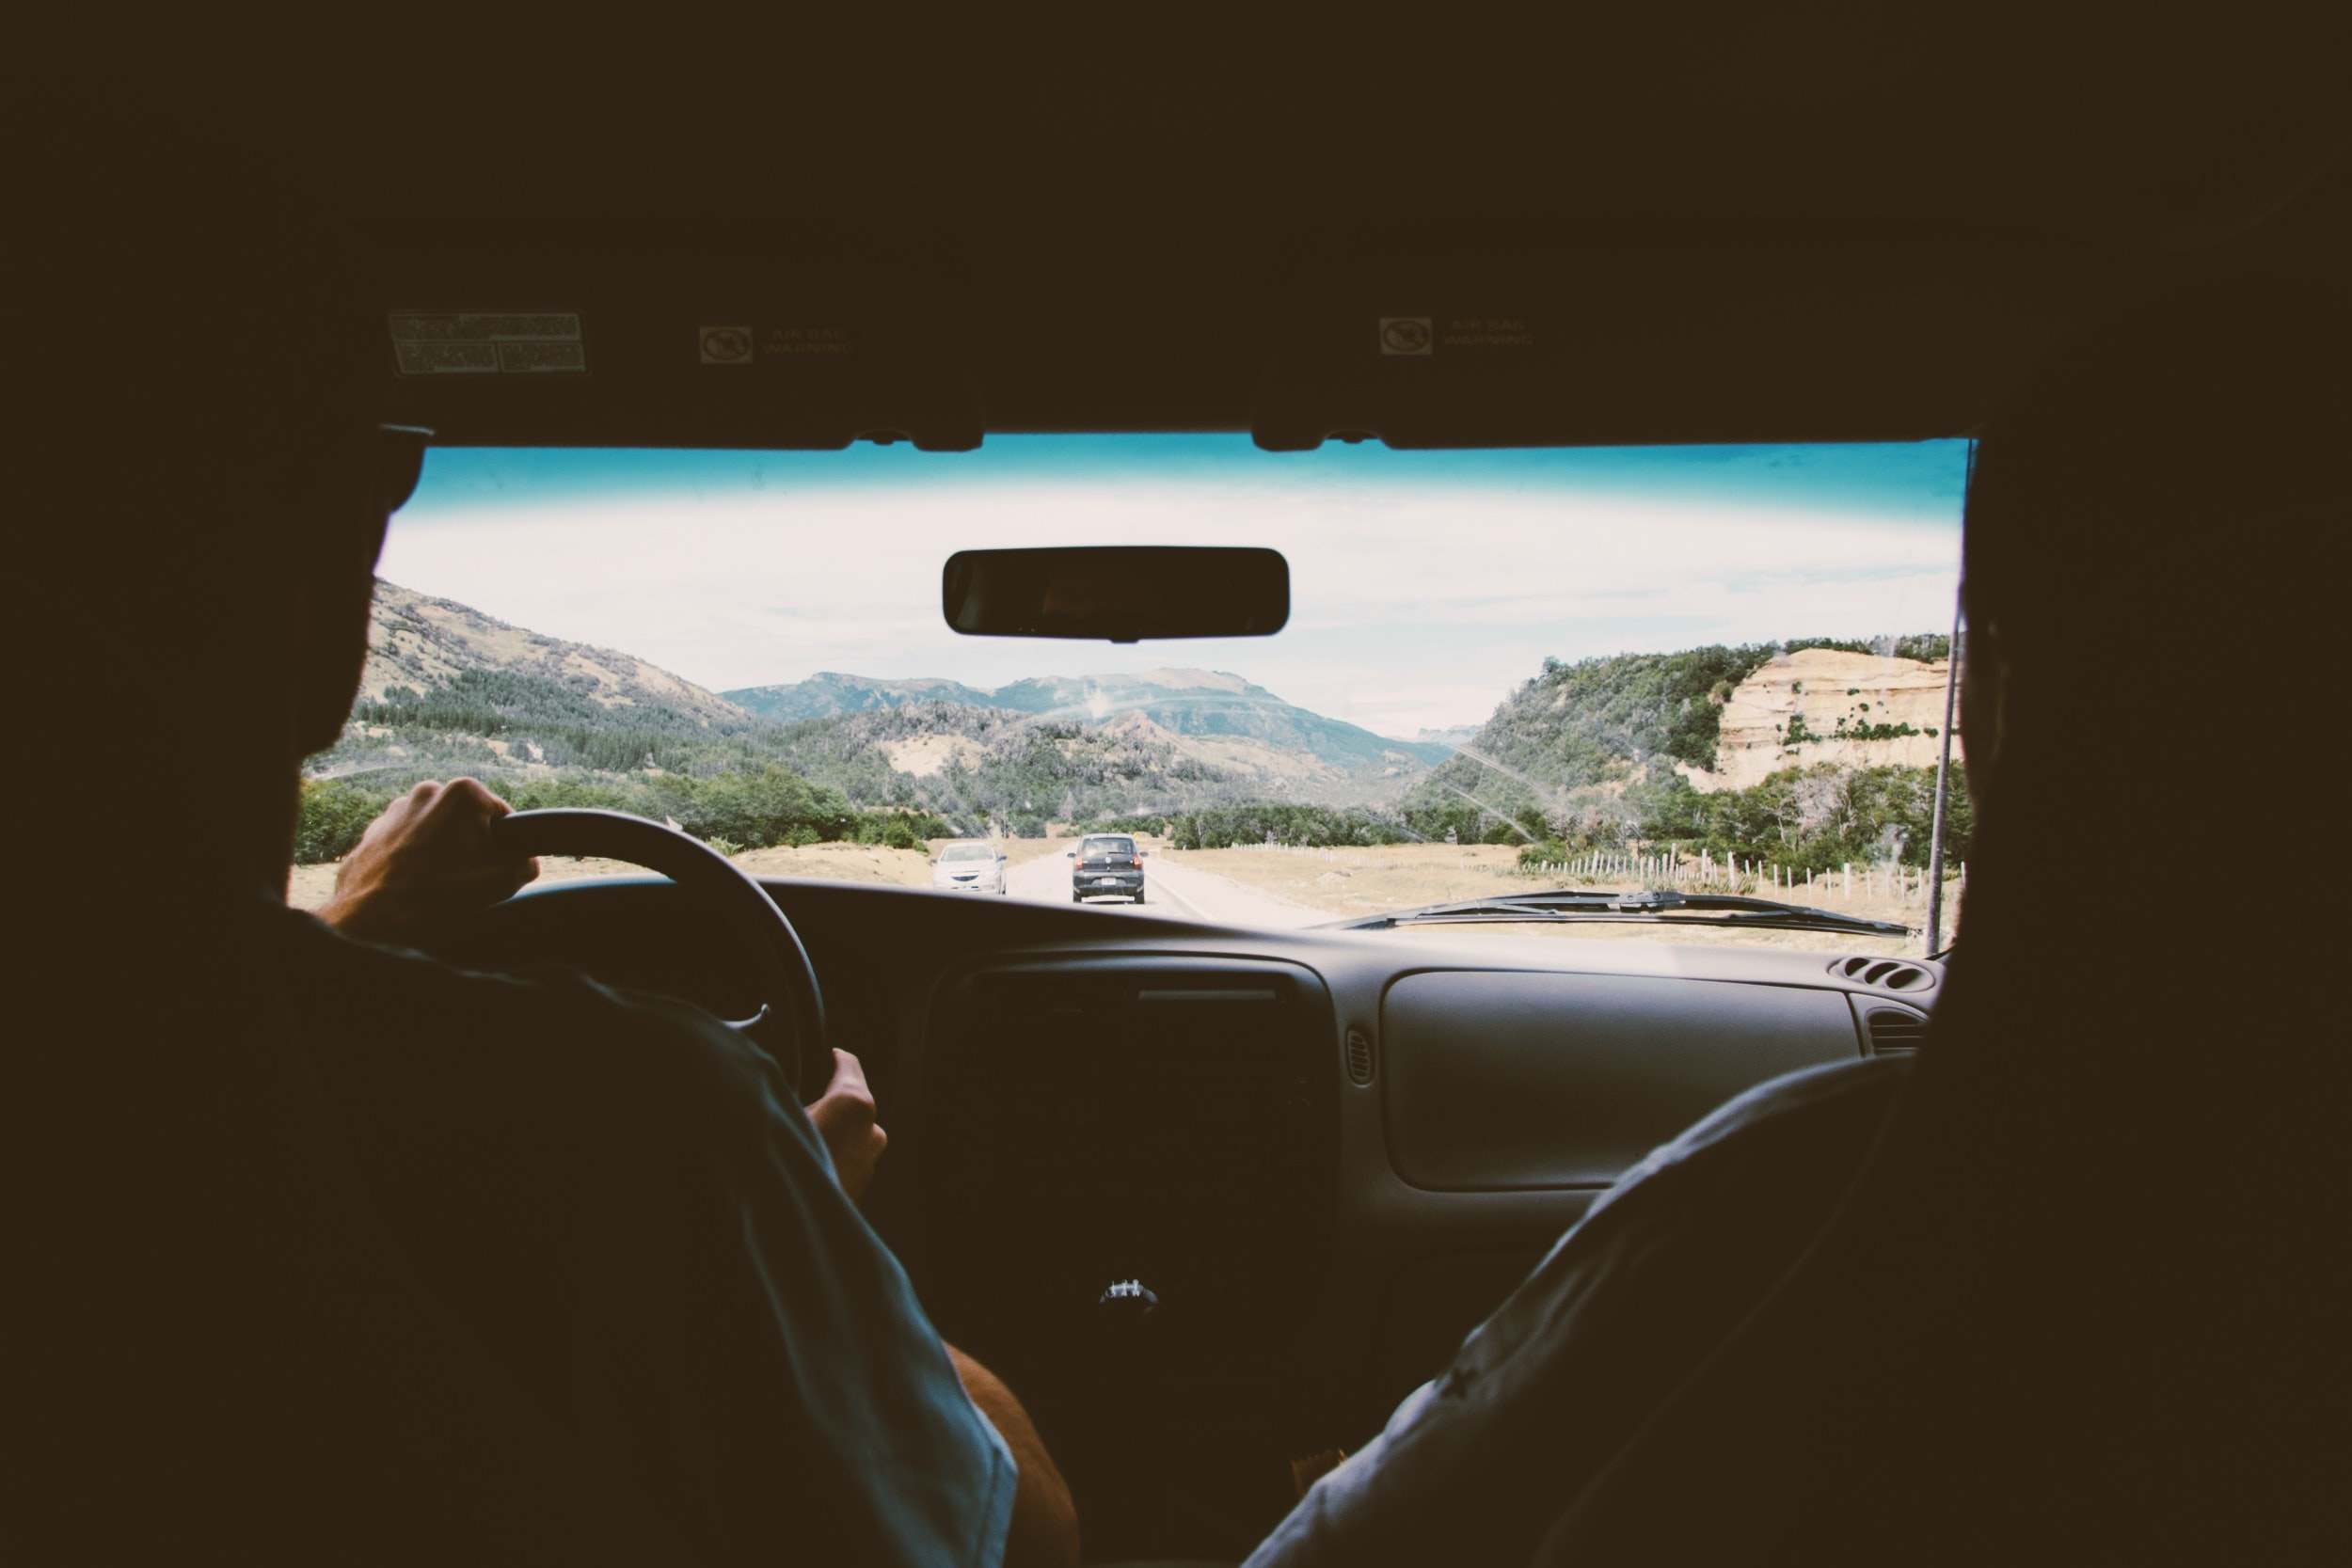 POV shot from the backseat during a road trip.